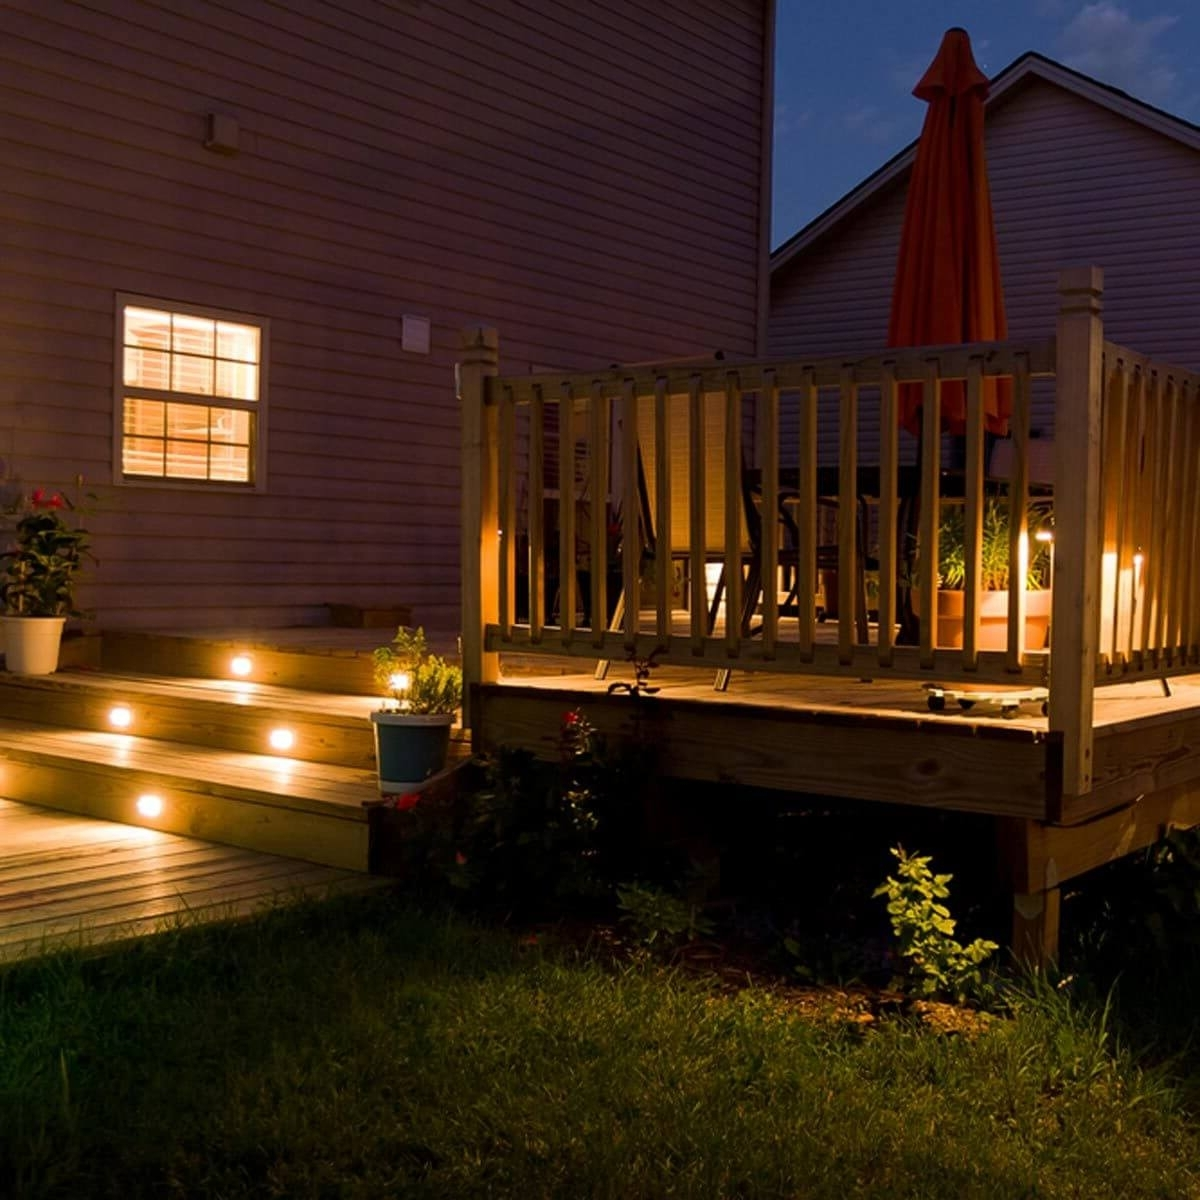 Outdoor Deck Lanterns With Recent 12 Ideas For Lighting Up Your Deck — The Family Handyman (View 8 of 20)